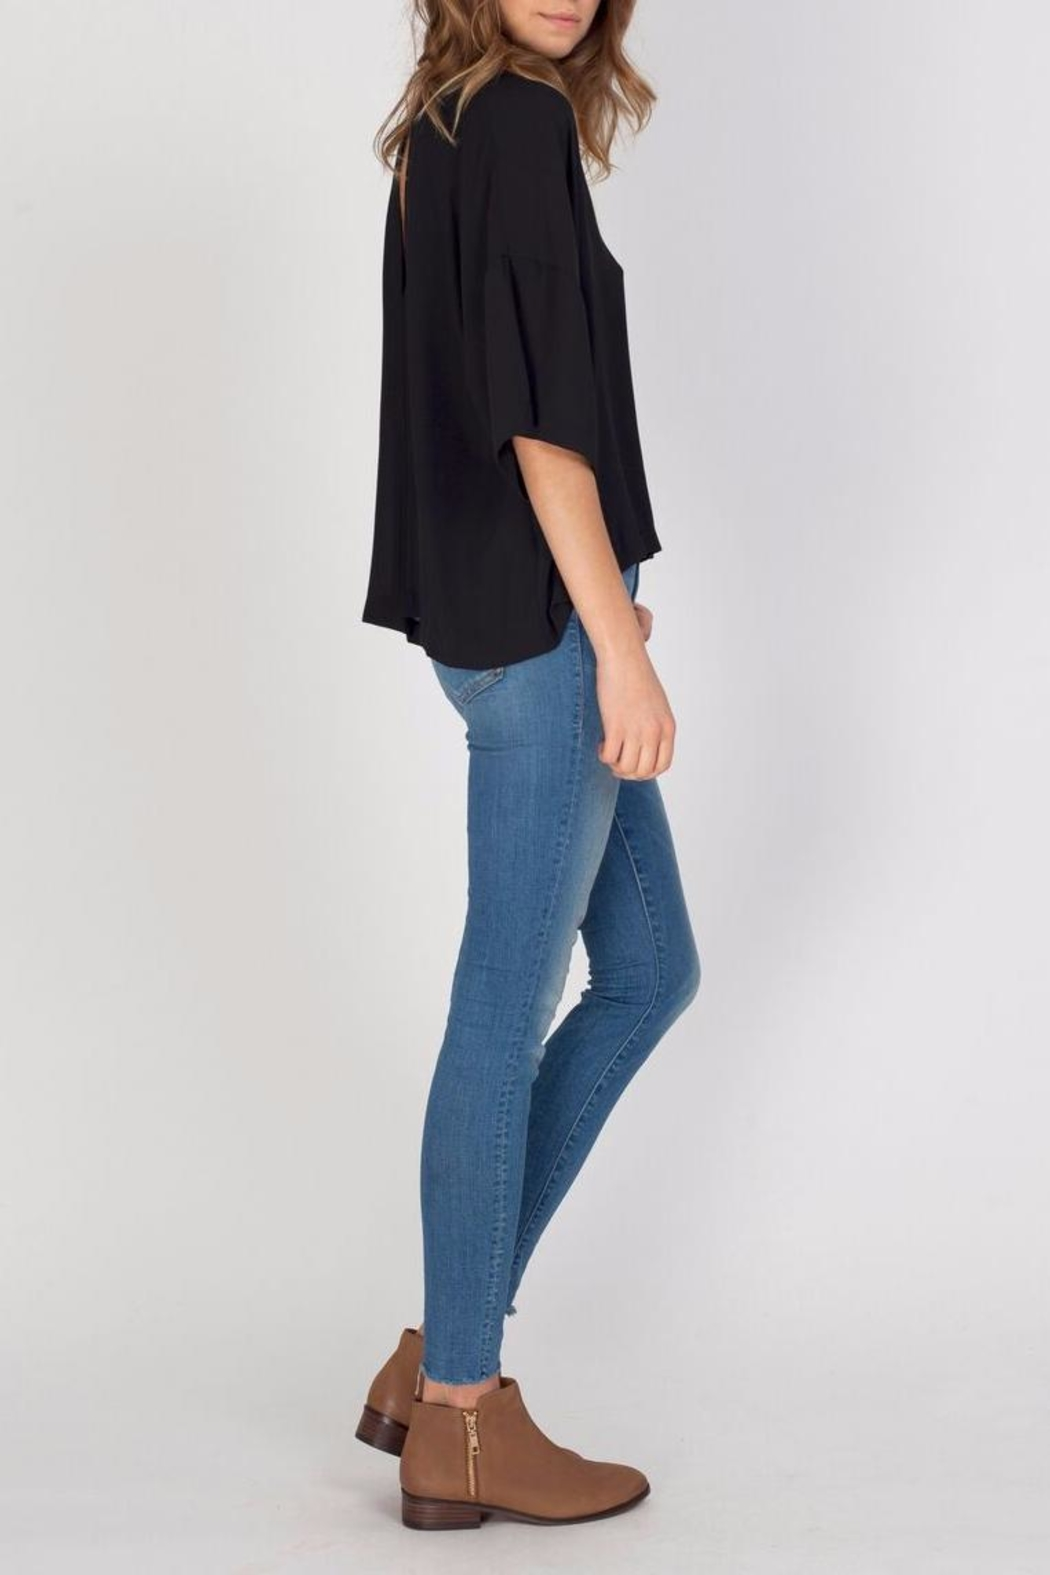 Gentle Fawn Black Andrea Top - Front Full Image